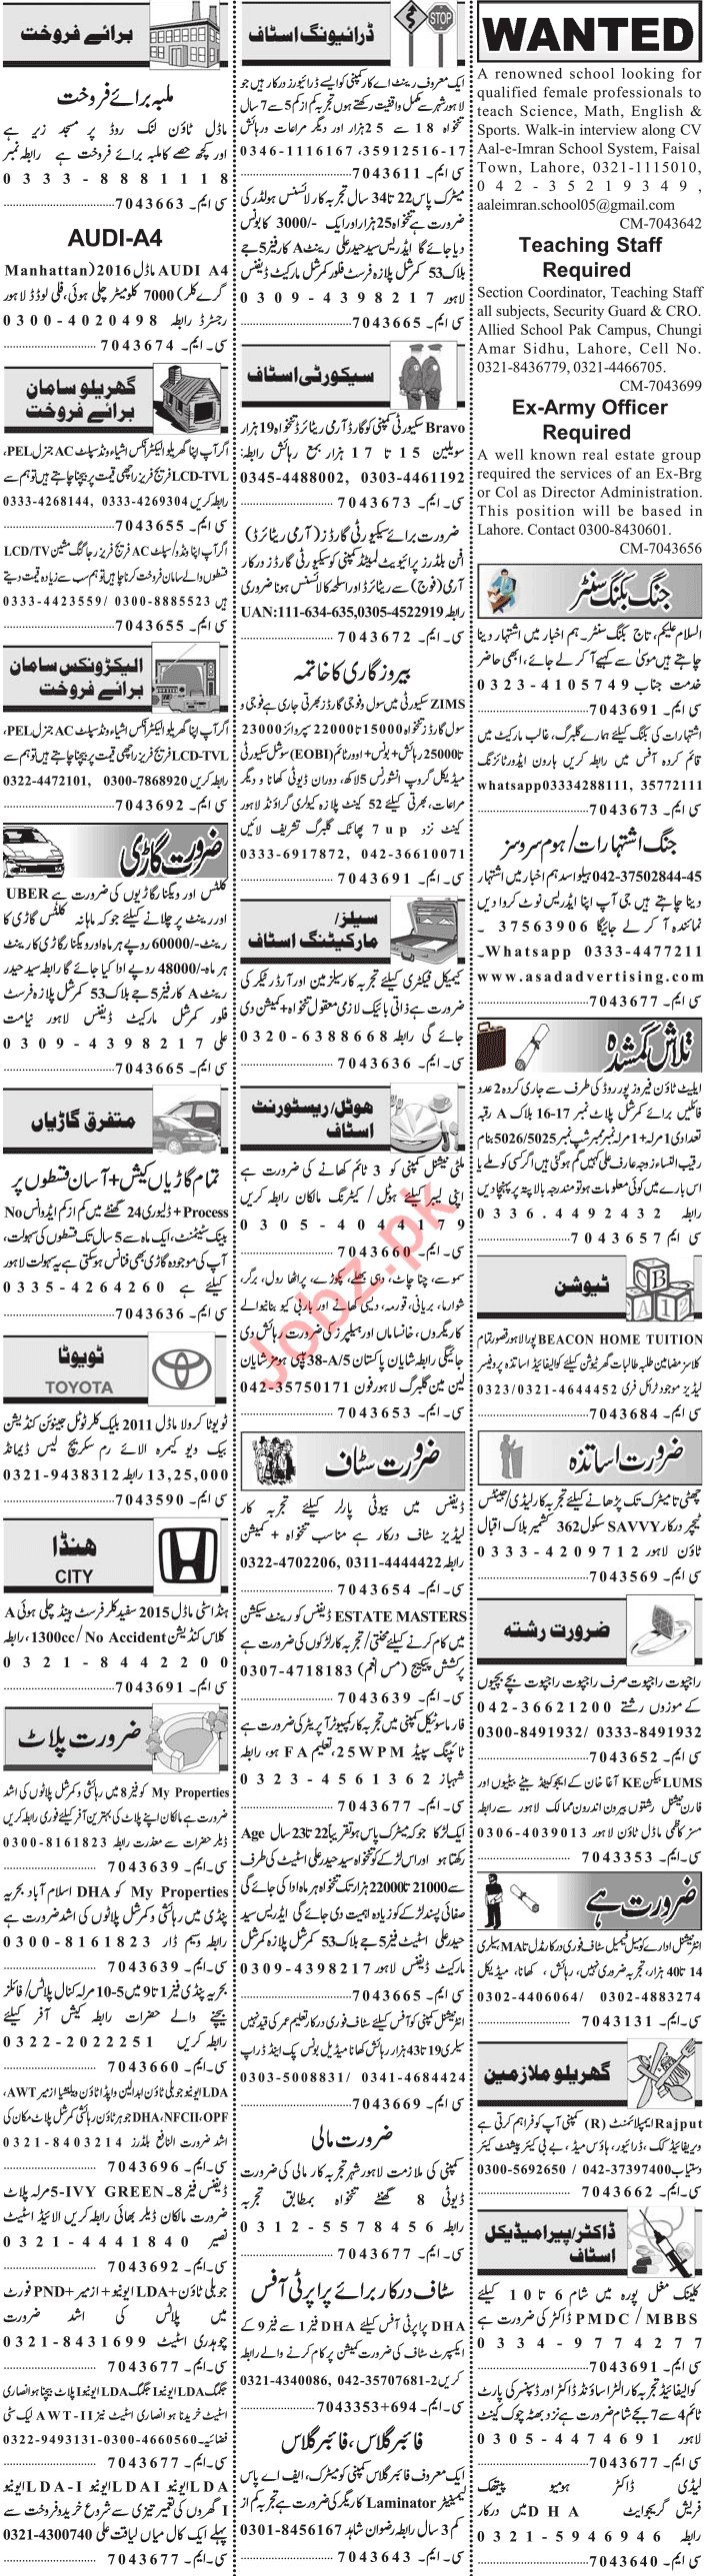 Daily Jang News Paper Classifieds Jobs in Pakistan 2018 2019